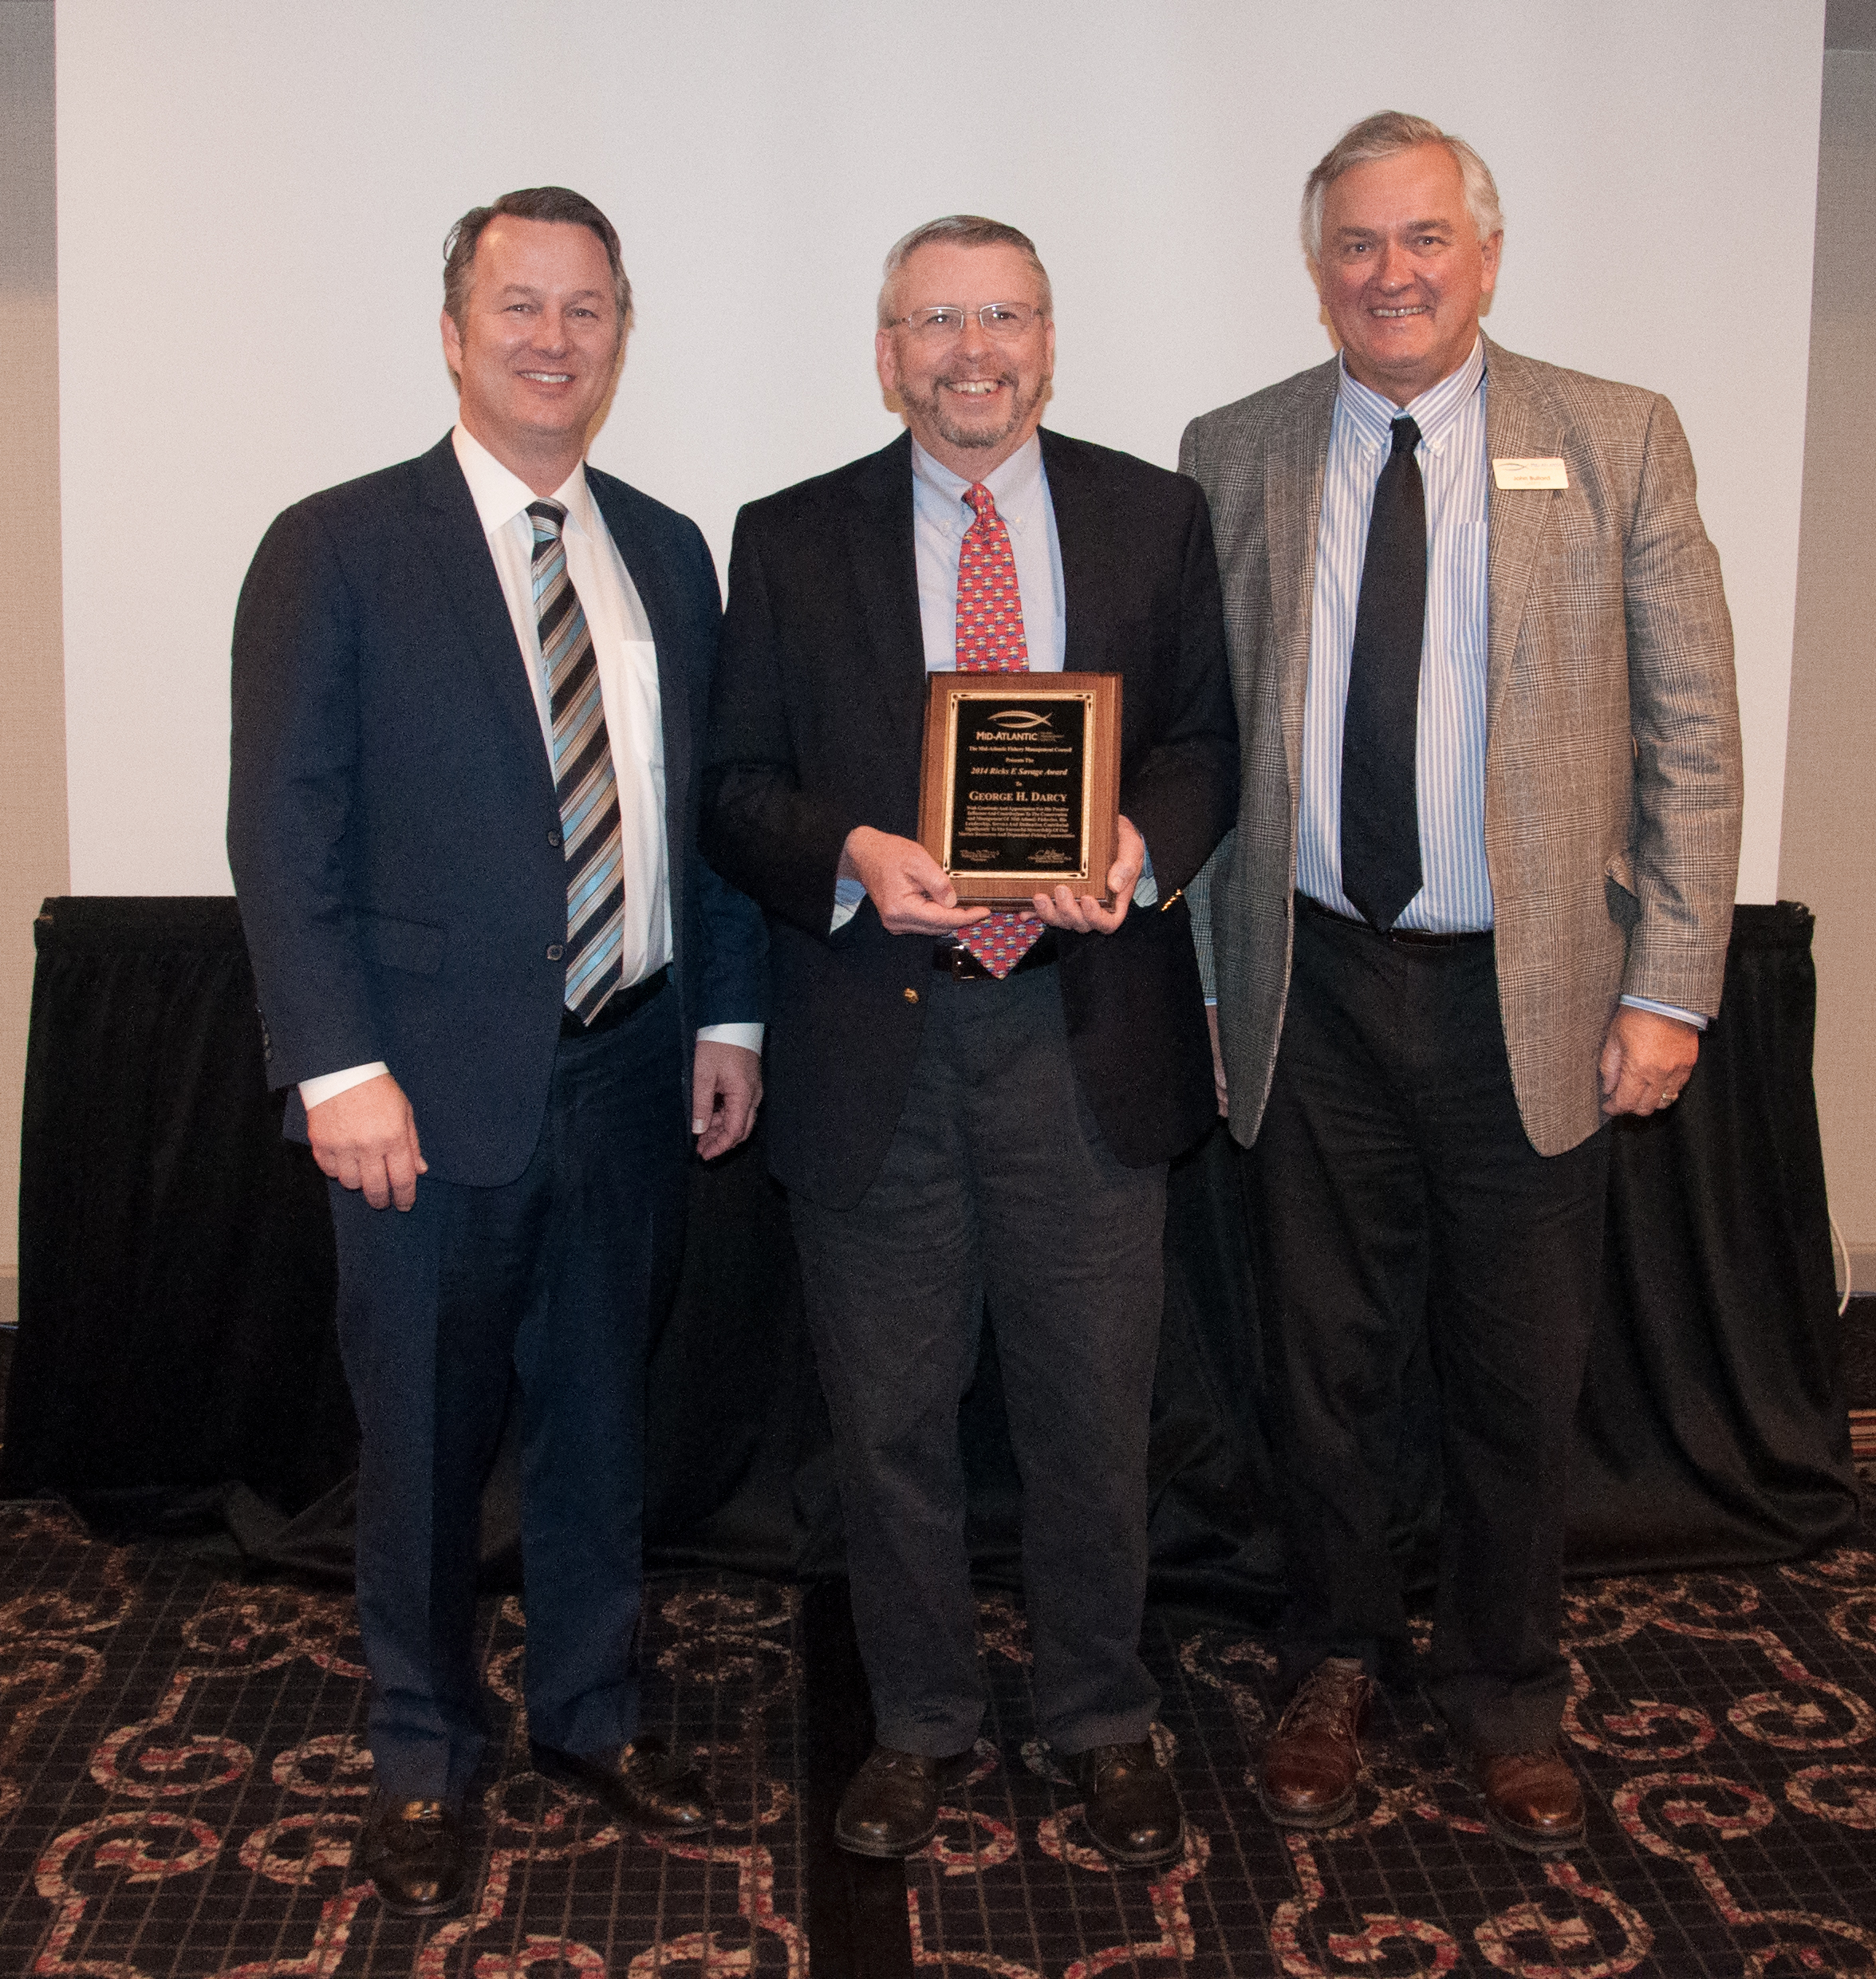 Ricks E Savage award recipient George Darcy (center) with Council Chairman Rick Robins (left) and Regional Administrator John Bullard (right).